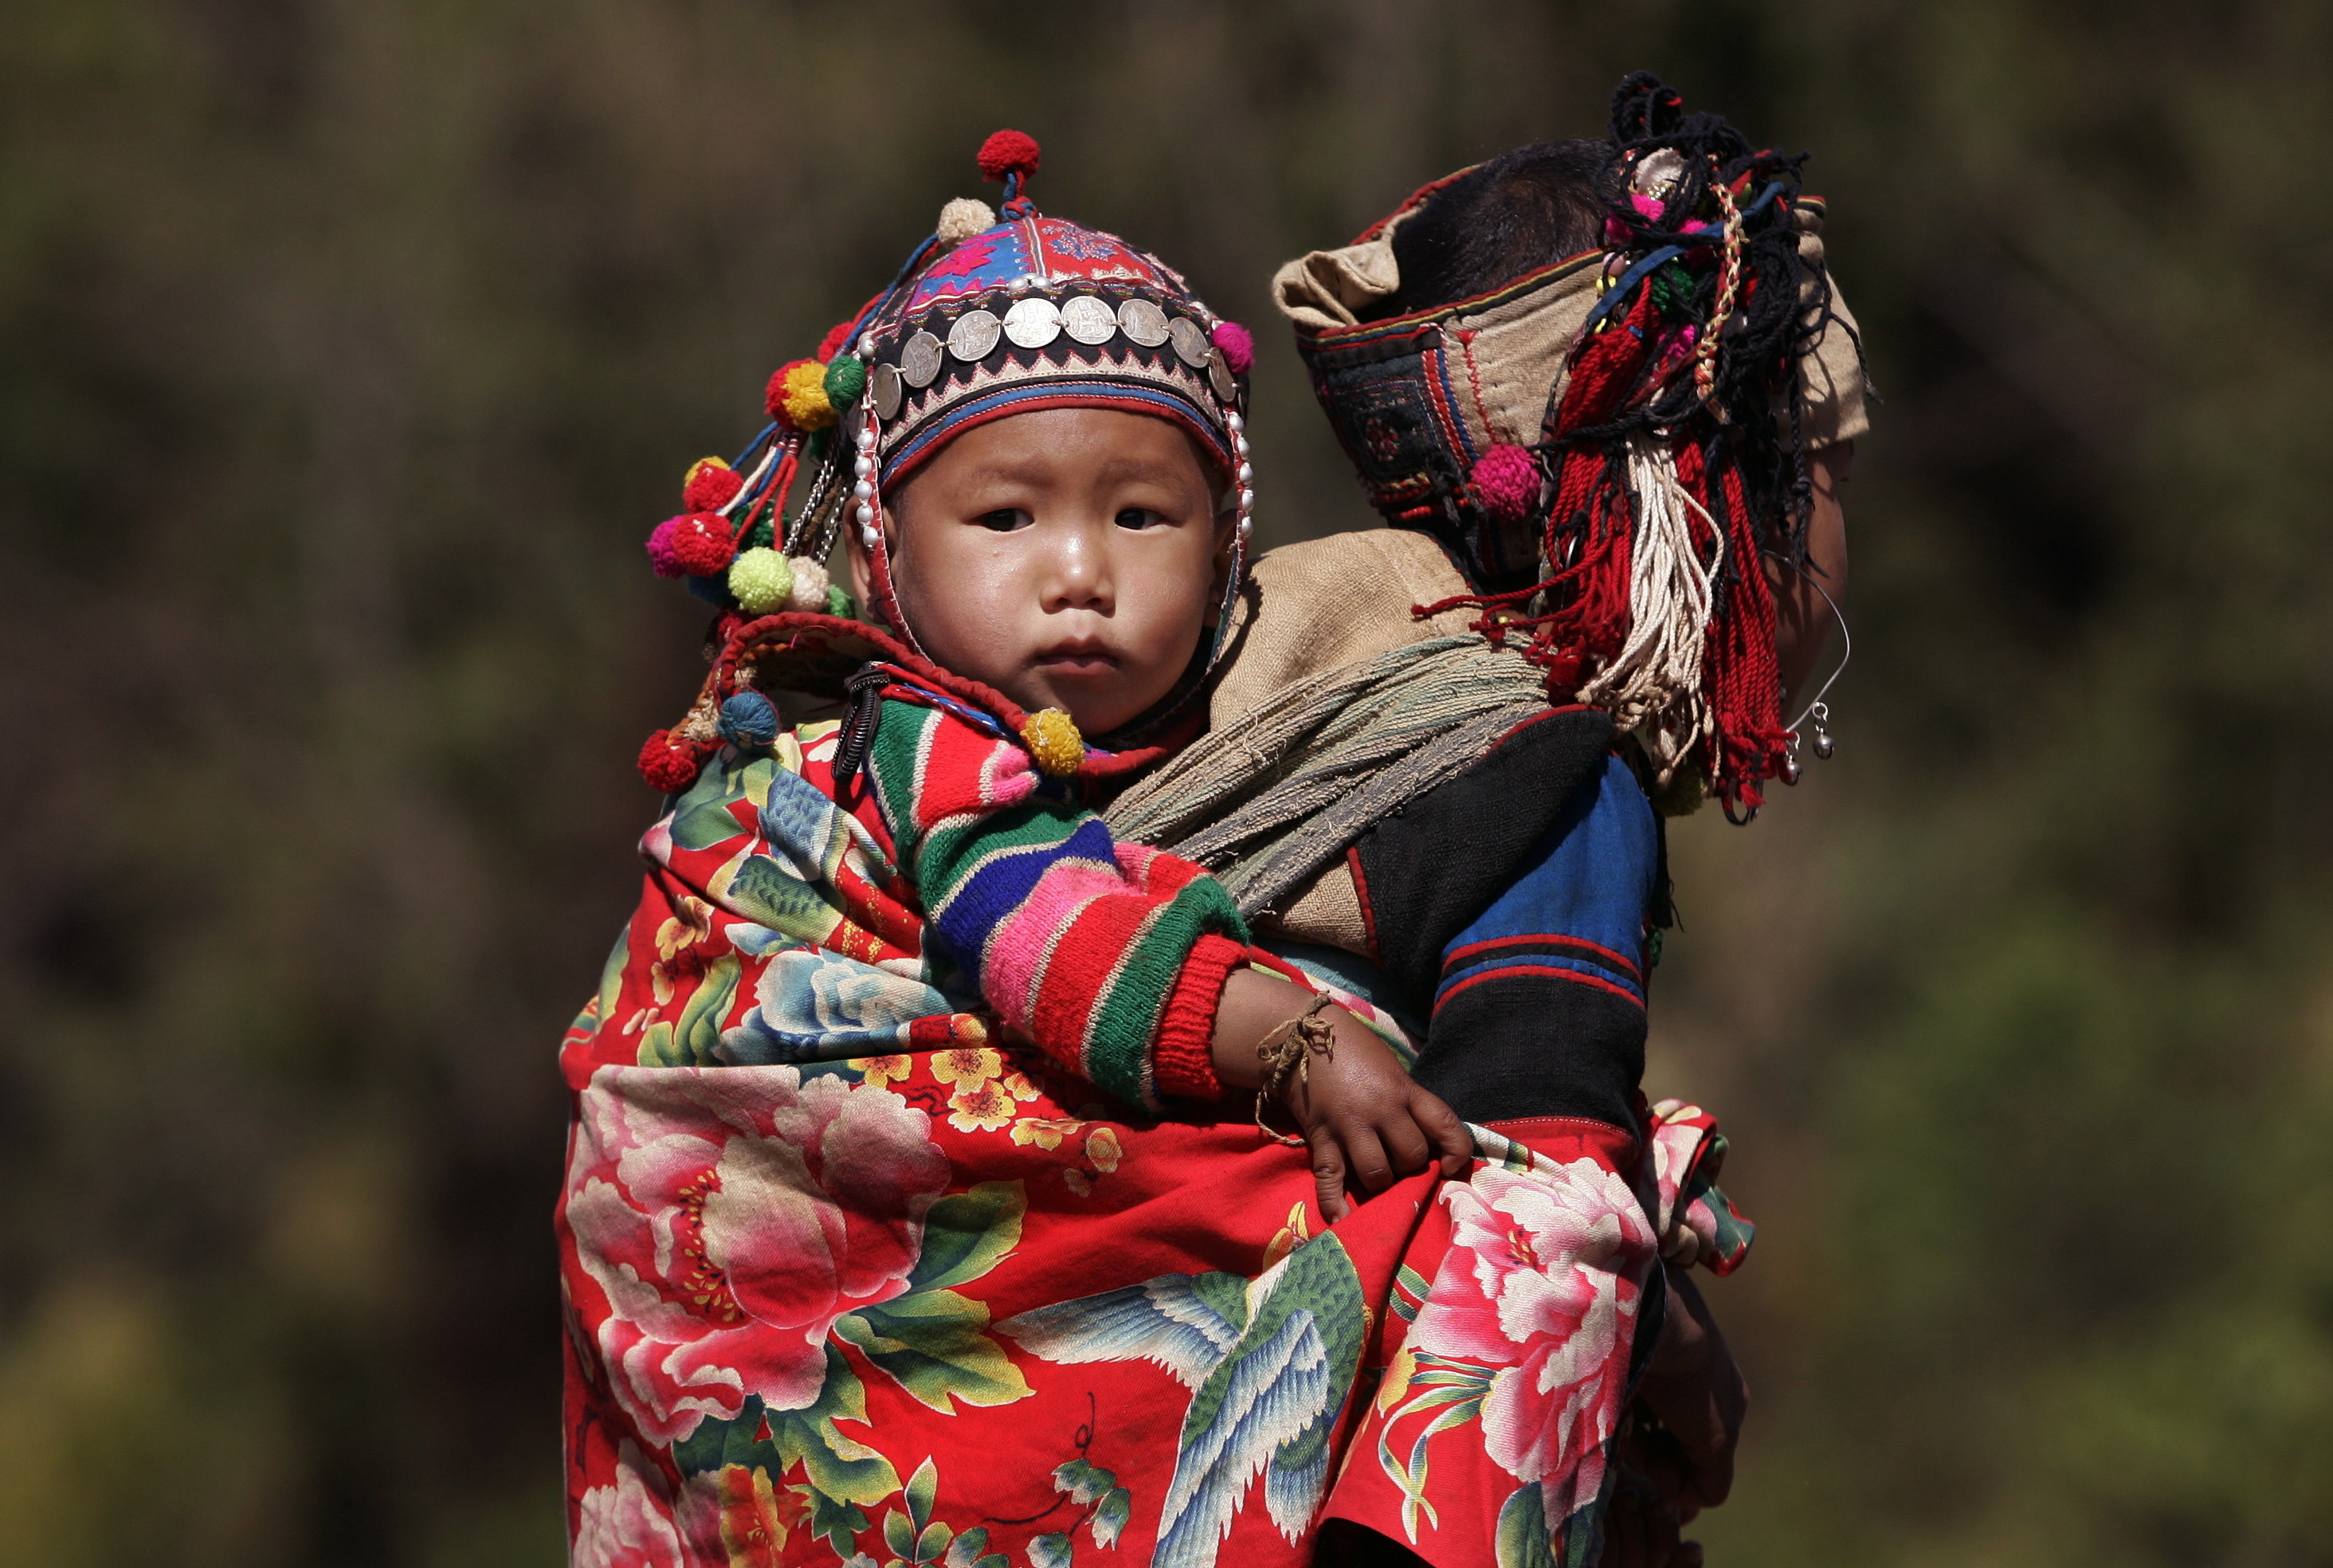 An Akha hills tribe girl carries her sibling in the Phongsali province of Laos February 15, 2006. [Laos, the world's third largest heroin producer only ten years ago, declared itself free of opium poppies on Tuesday, after a six year campaign against the raw material use to make the narcotic.] - RTXO985